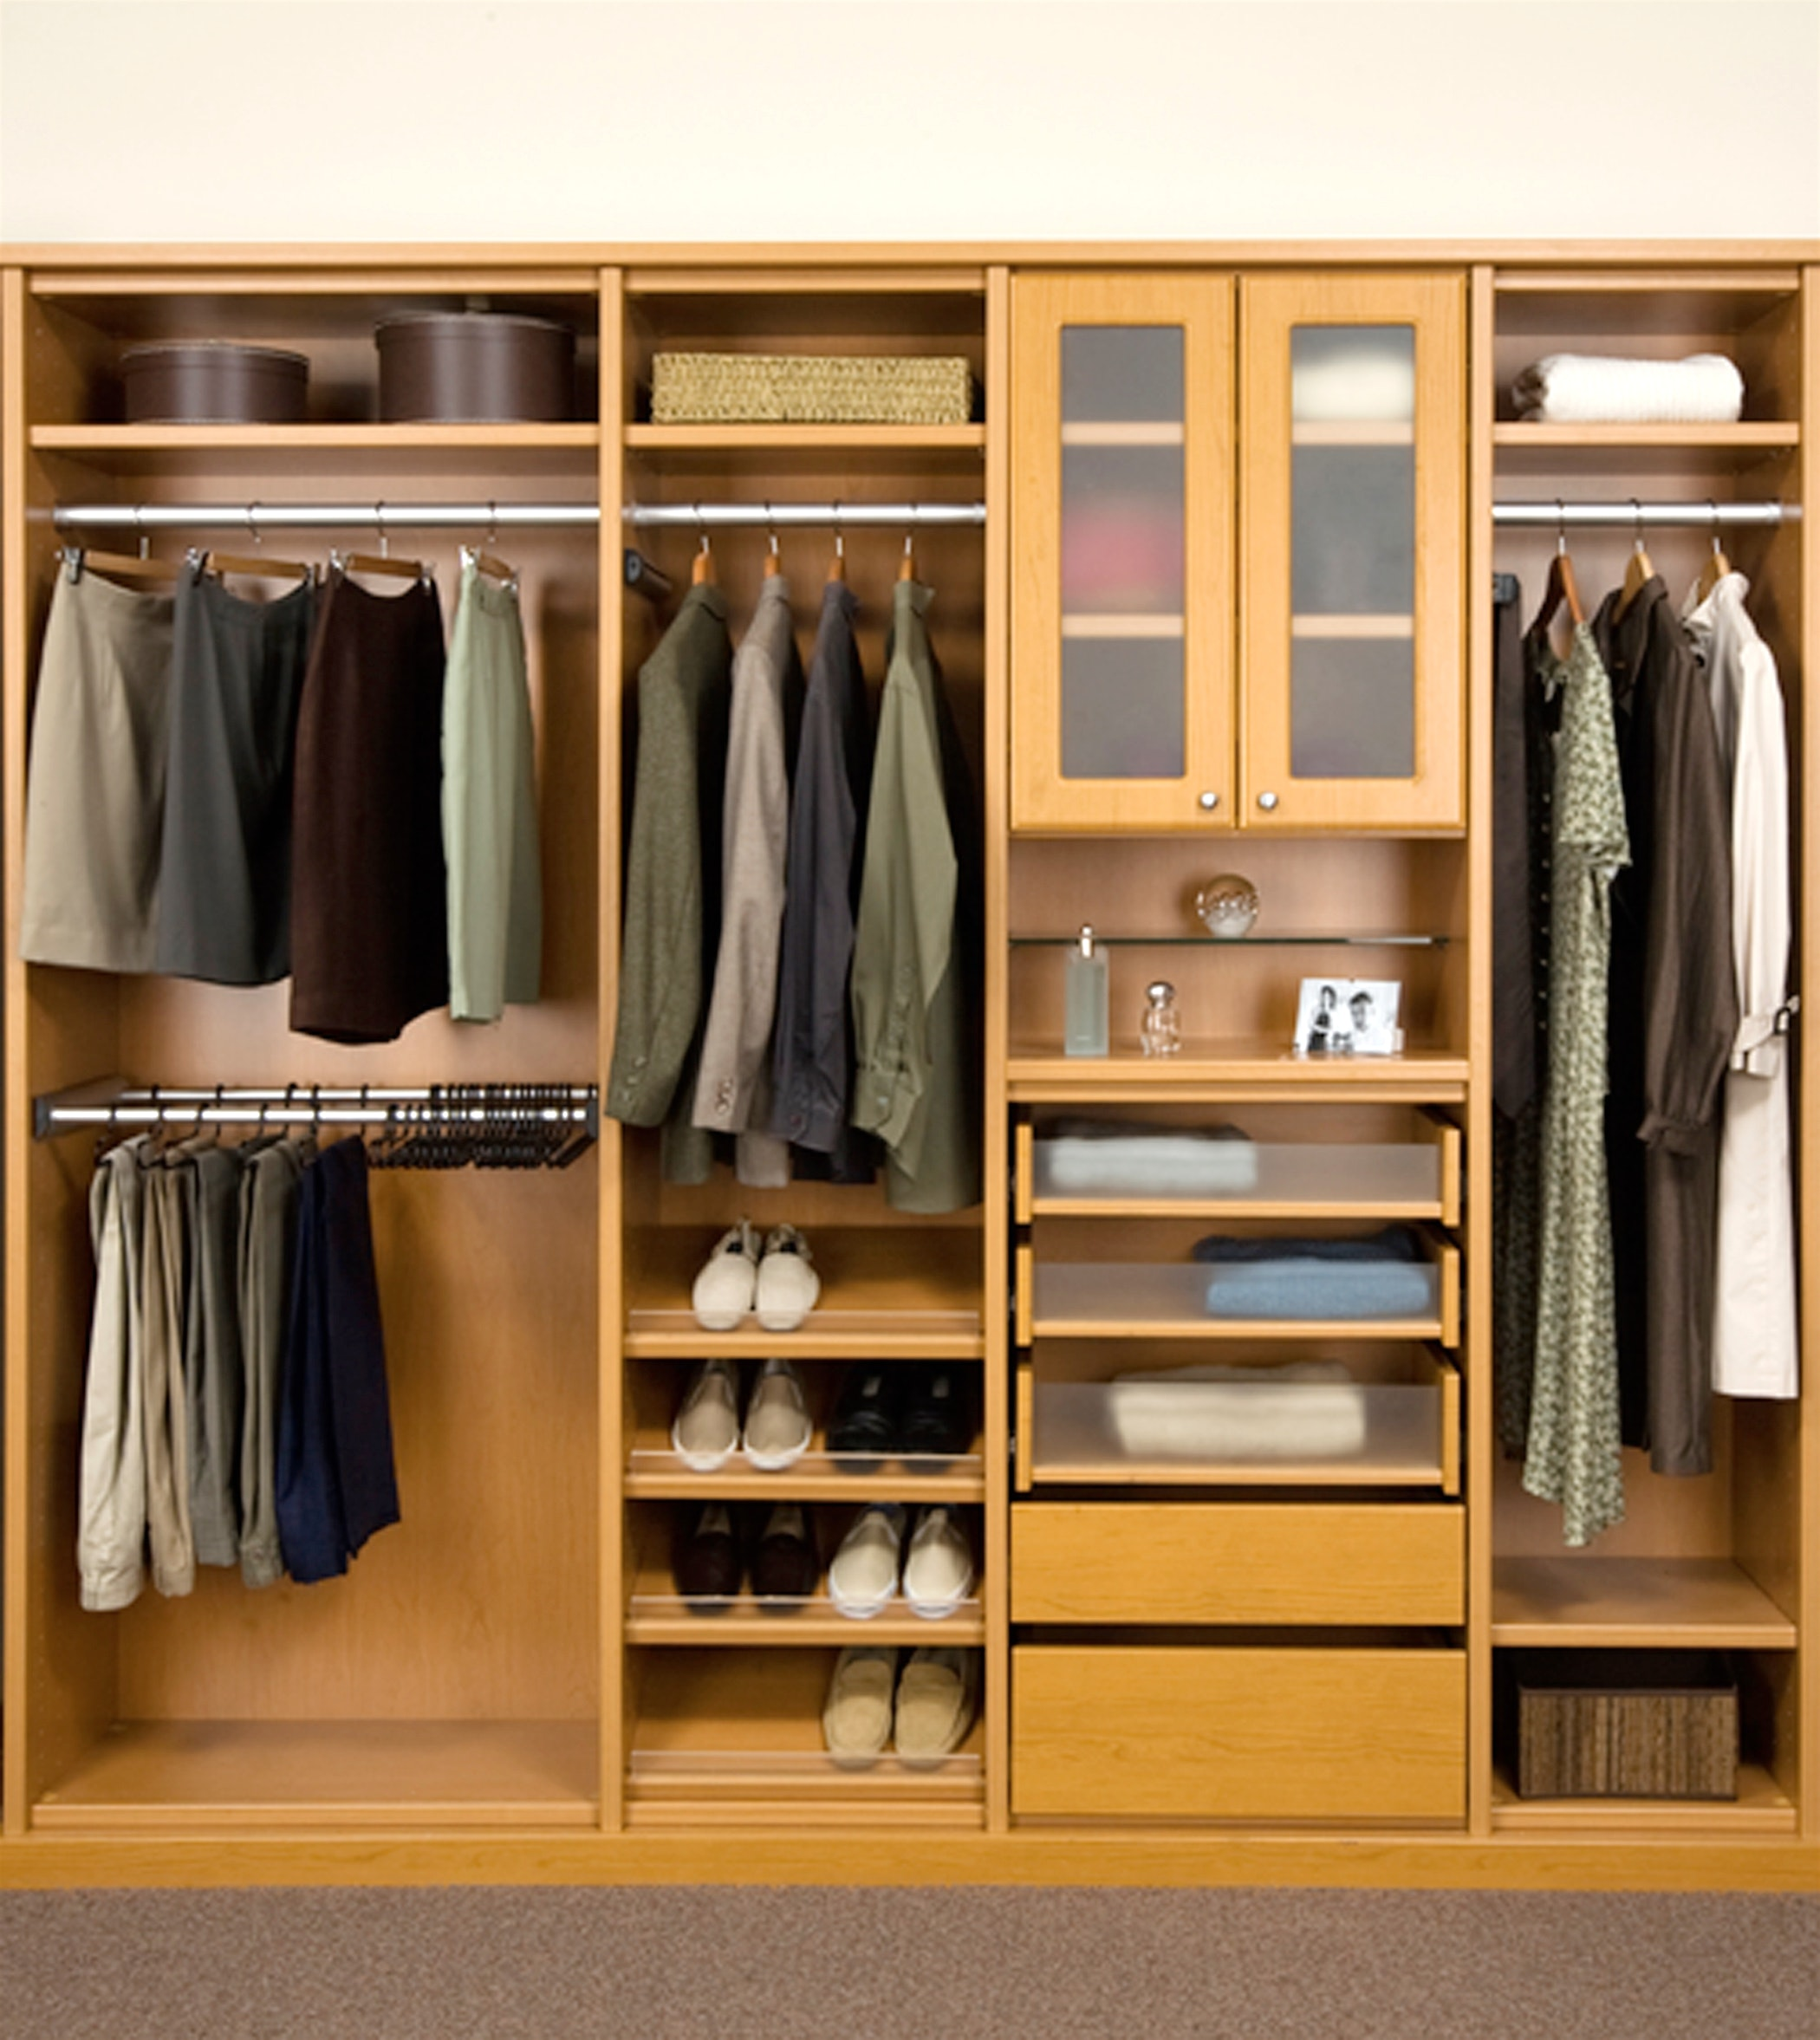 Inspiring Storage System Design Ideas with Cedar Closet Kit: Cedar For Closets At Lowes | Cubby Closet Organizer | Cedar Closet Kit